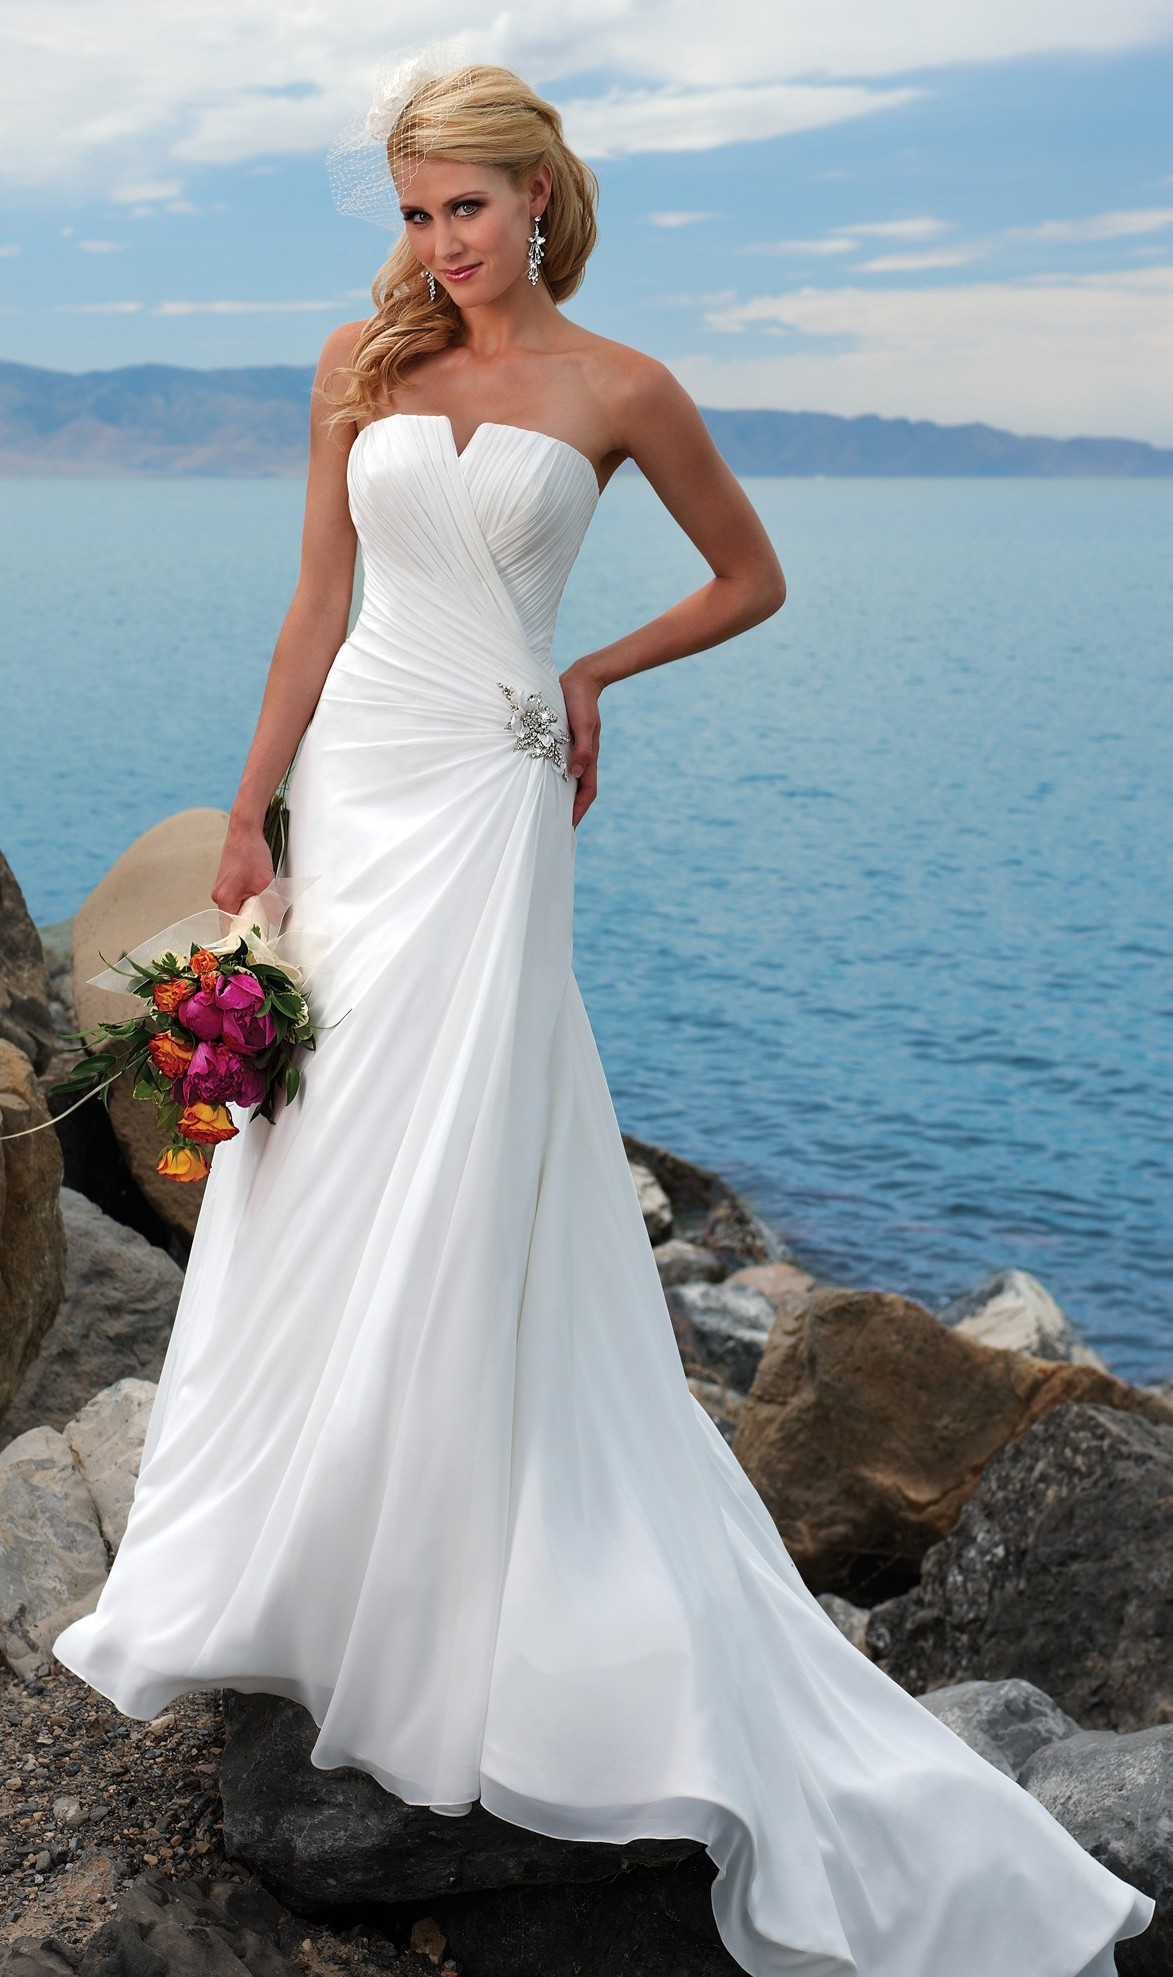 Strapless Beach Big Wedding Dresses